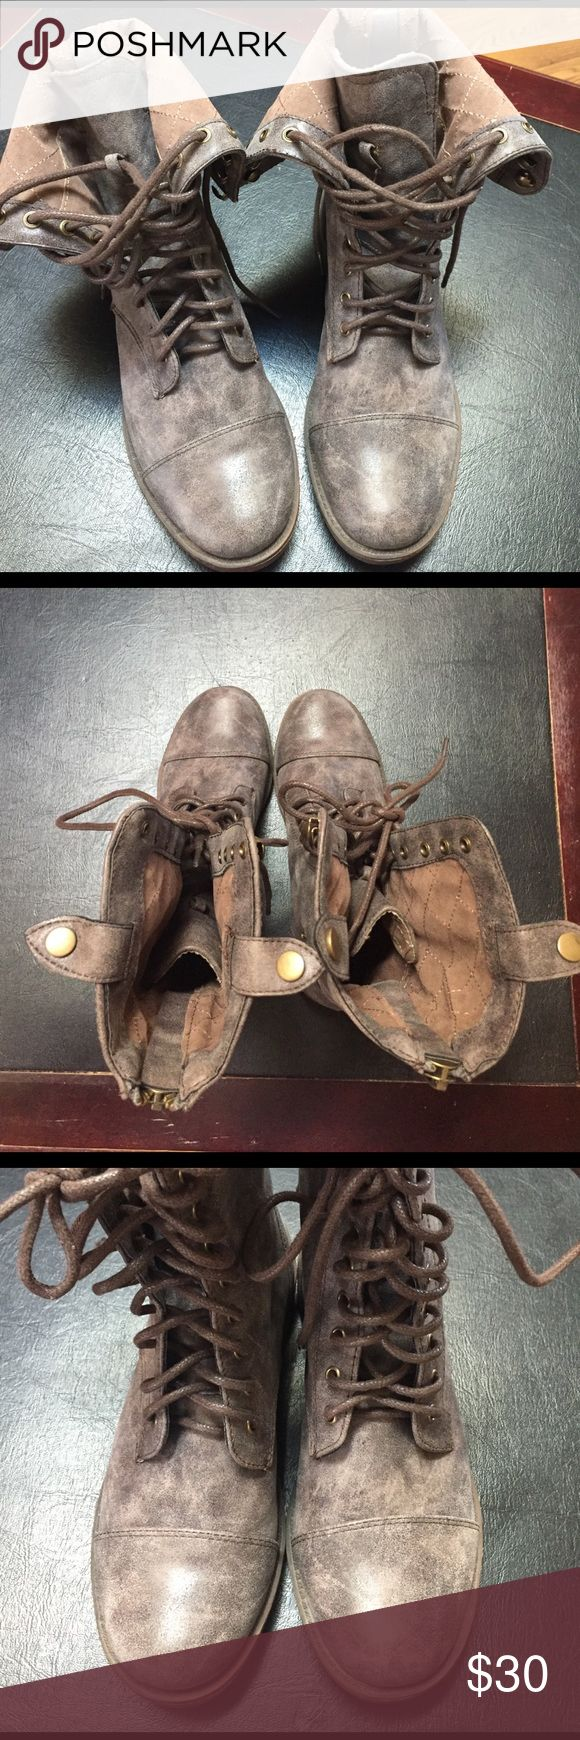 Dollhouse boots sz 7.5 These boots would be great combat boot style or folded over as short boots. They are NWOT. Have the zipper in the back and also tie up front. Color is a gray with some hue to it. Very pretty boots. Dollhouse Shoes Ankle Boots & Booties